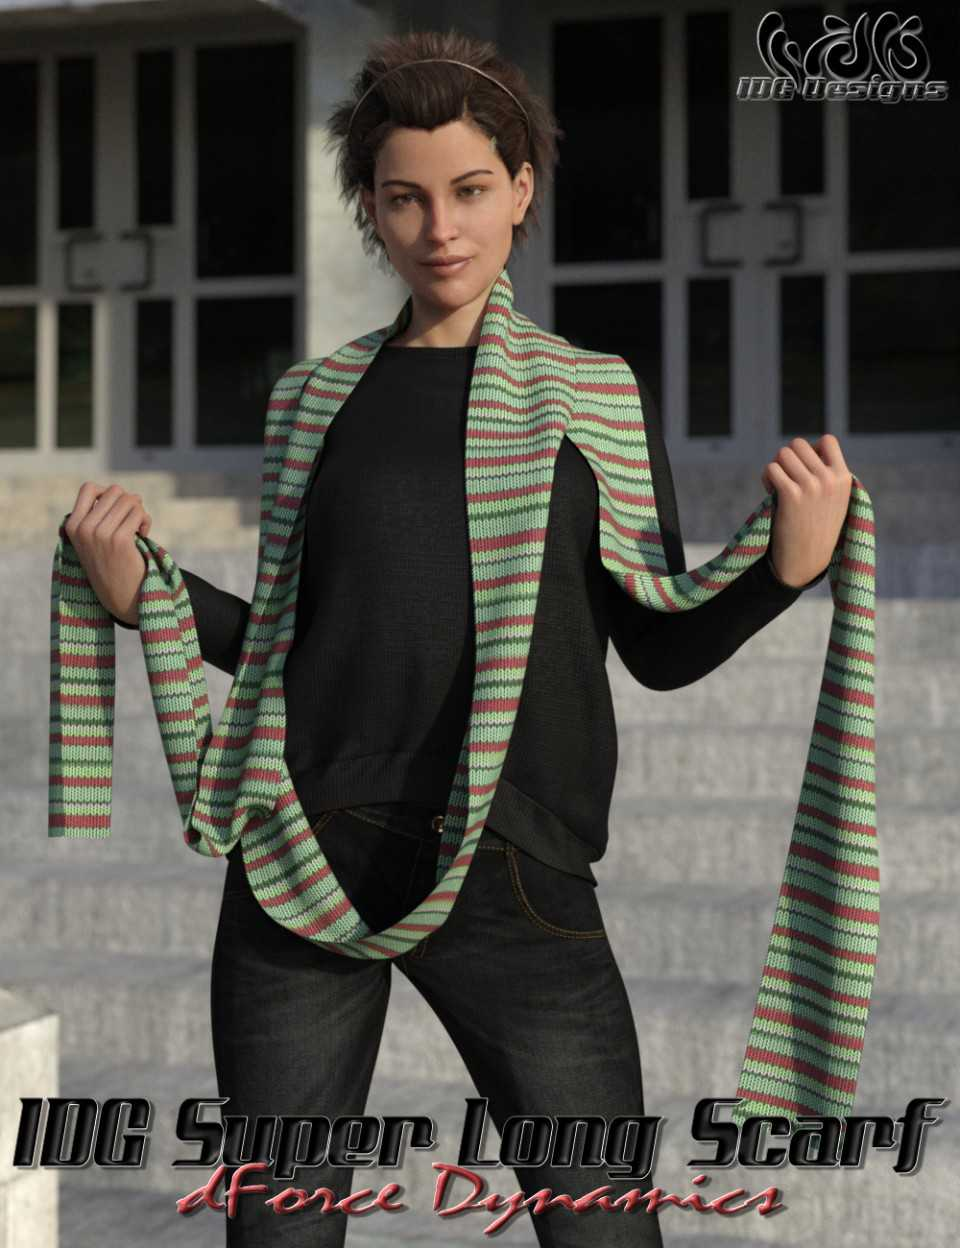 IDG dForce Dynamics Super Long Scarf